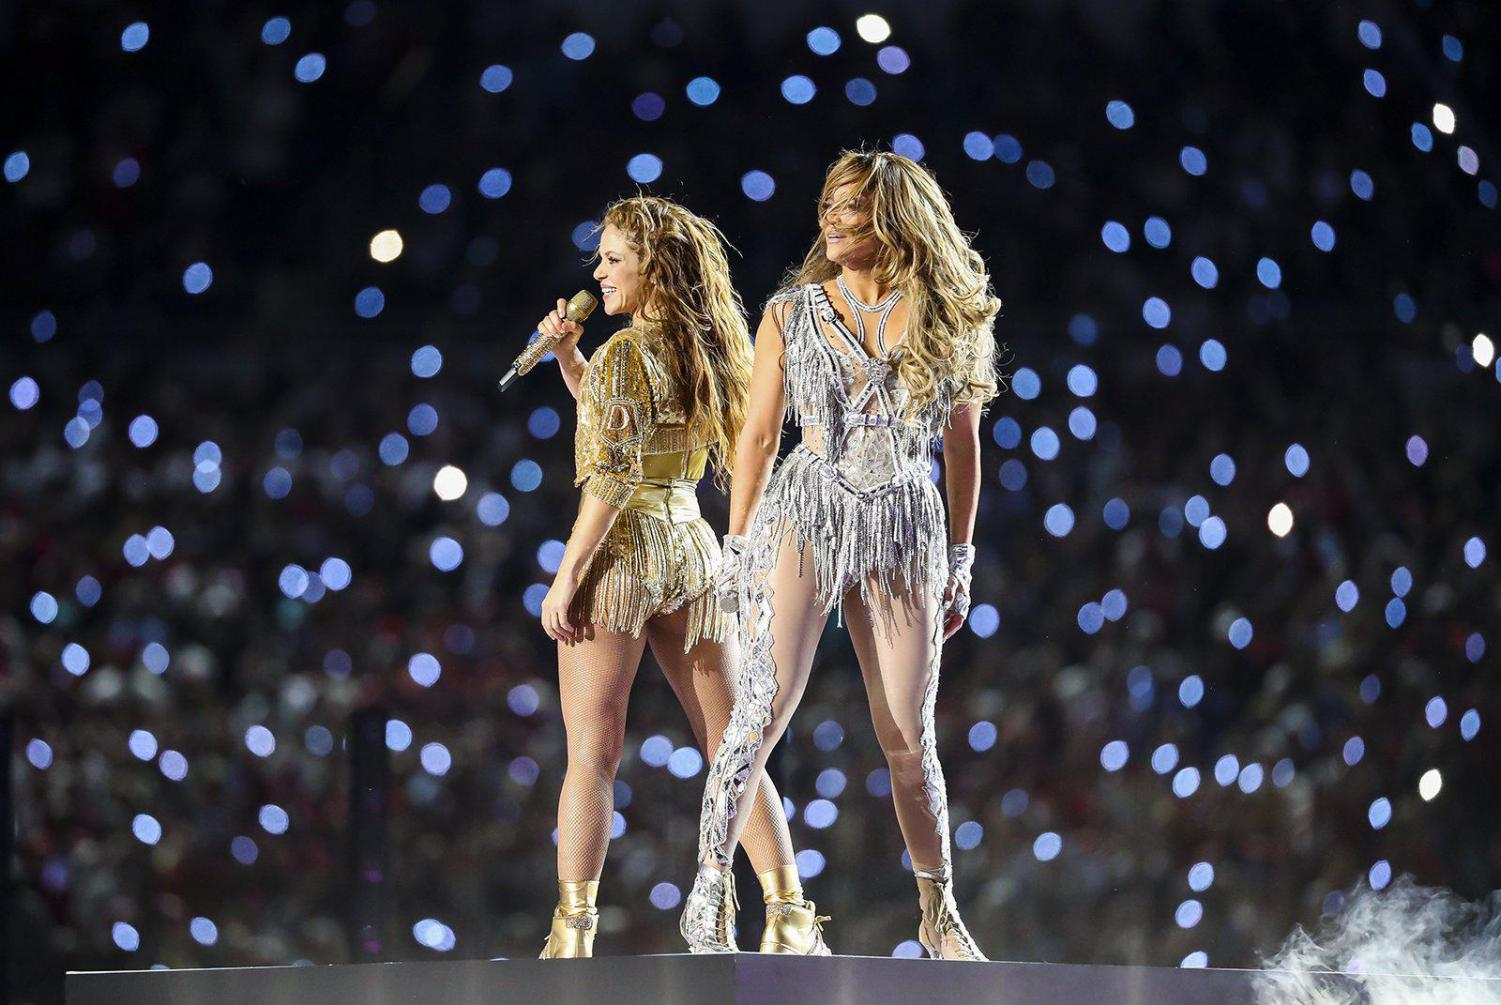 Singers Shakira and Jennifer Lopez performed at the Super Bowl LIV halftime in Miami, Florida Sunday, Feb. 2. The Kansas City Chiefs won 31-20 against the San Francisco 49ers.